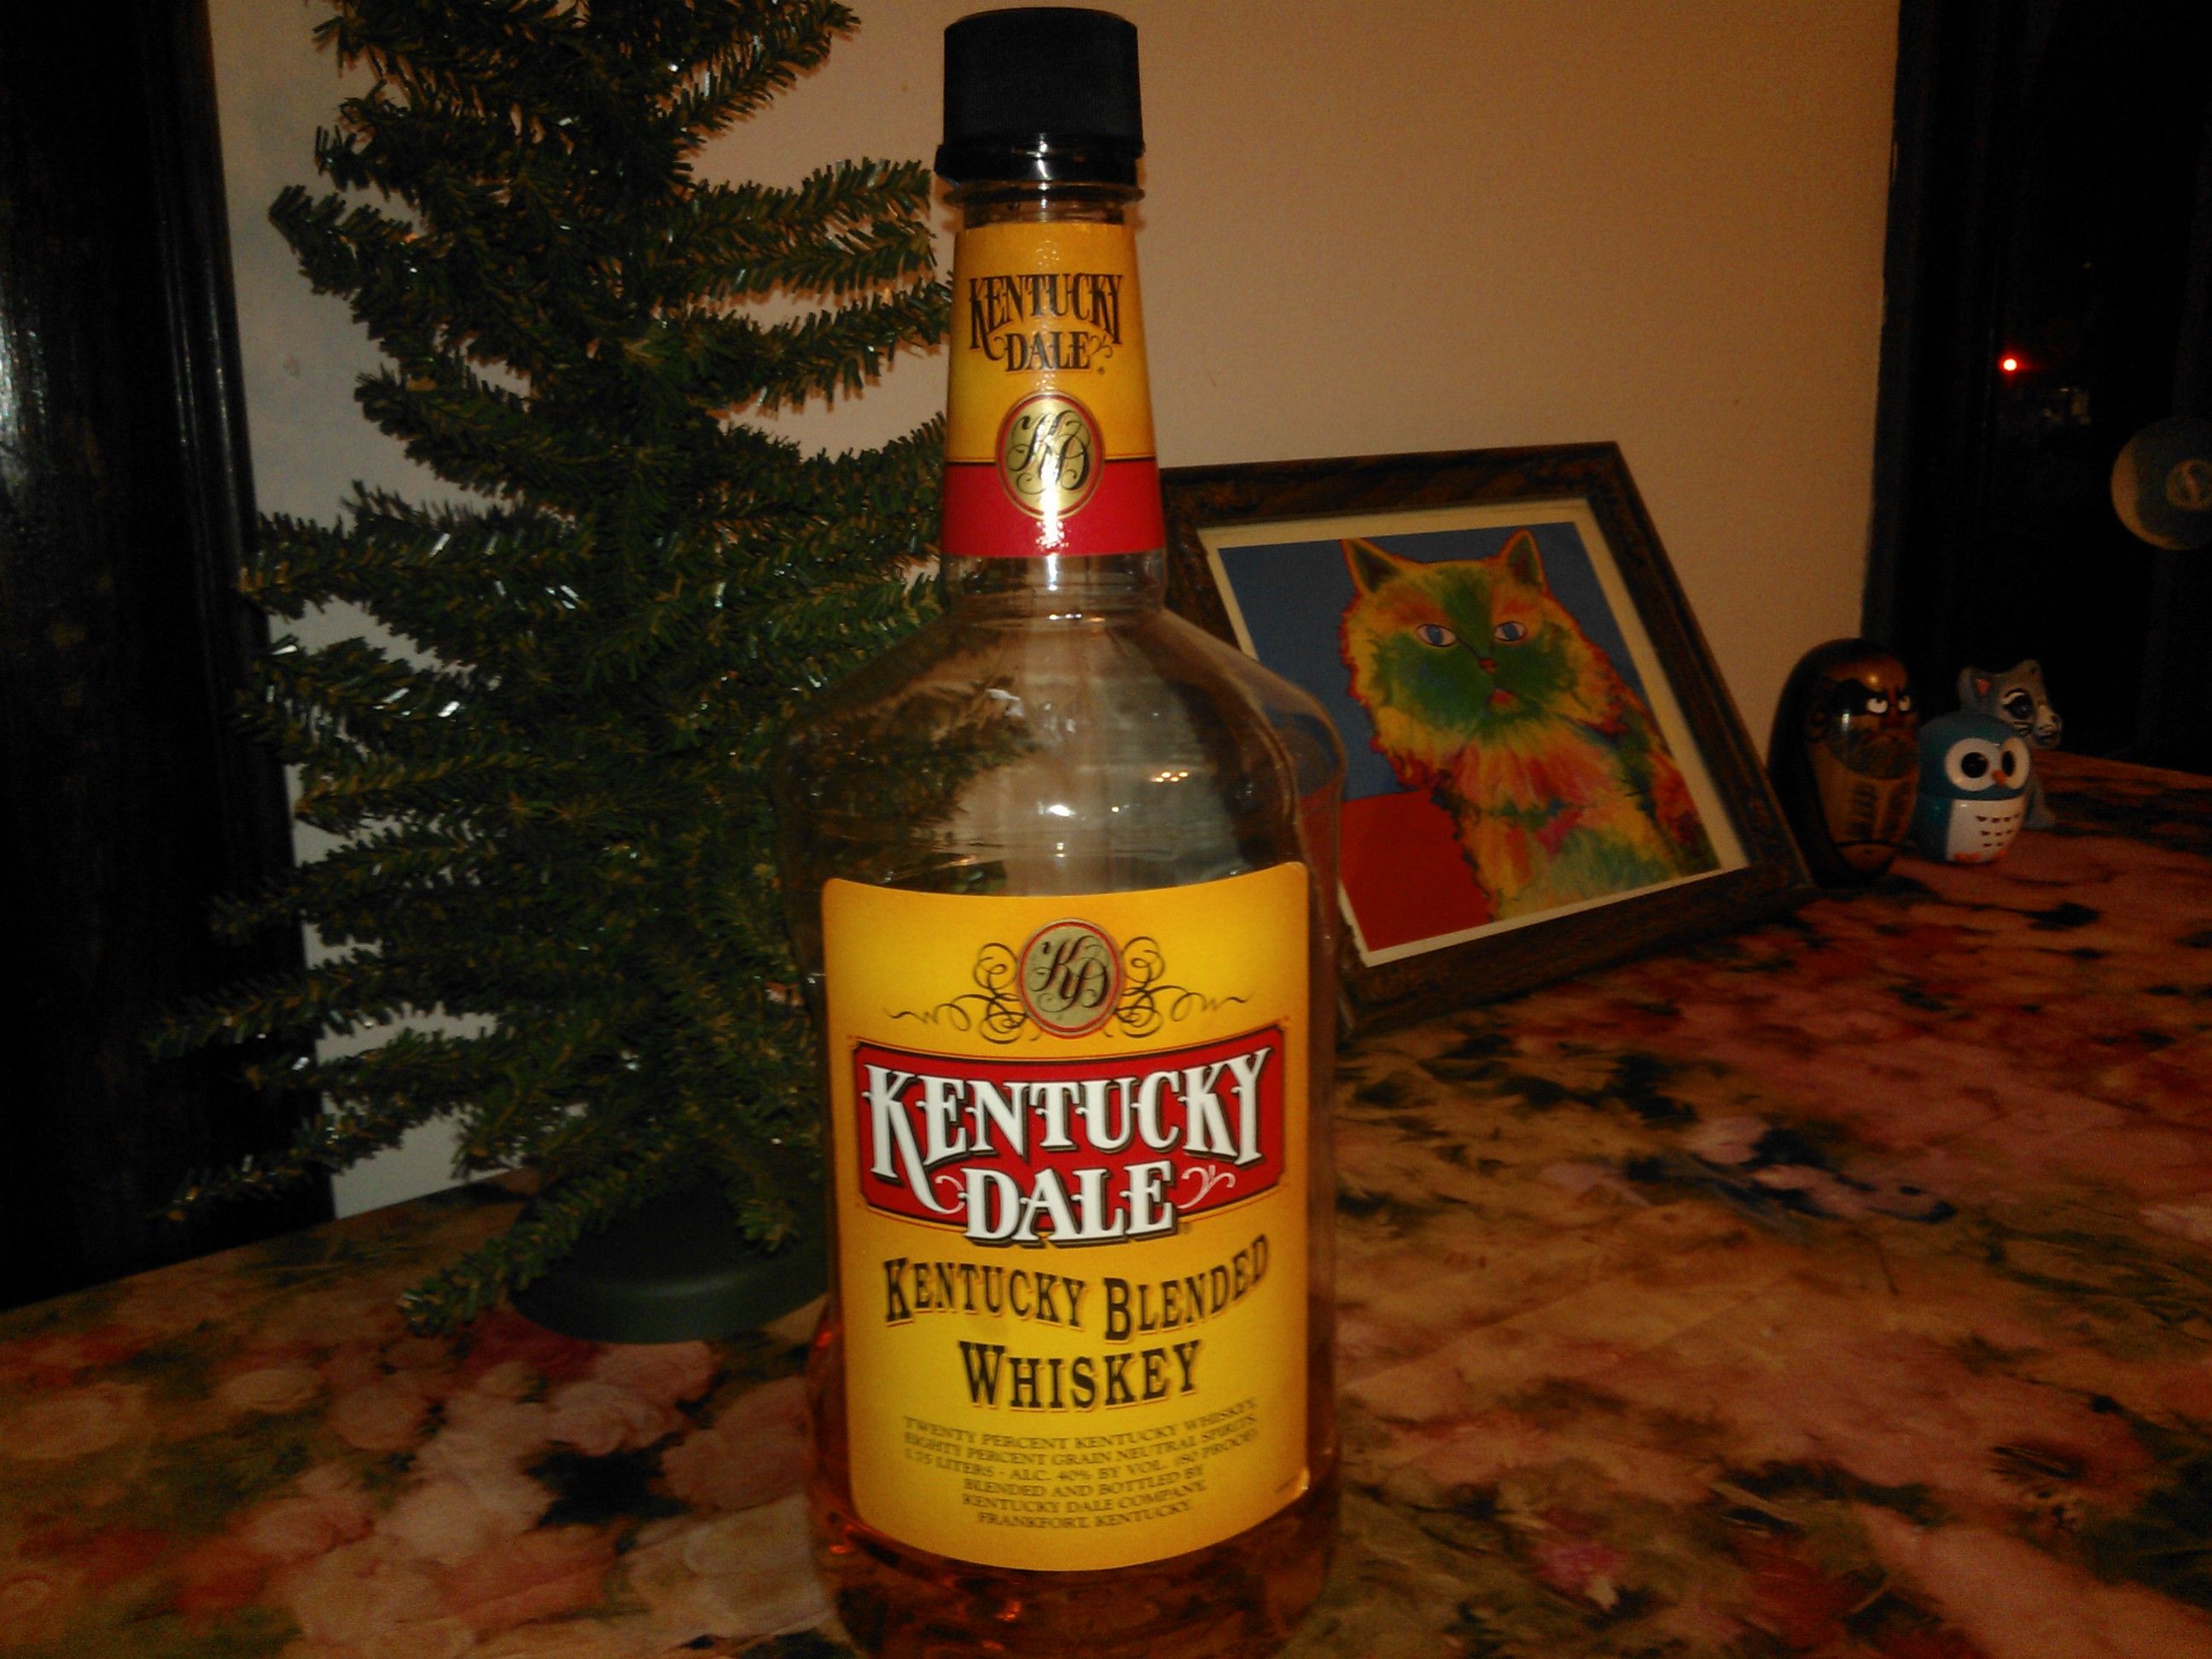 Kentucky Dale Bottle by Erik Bergs